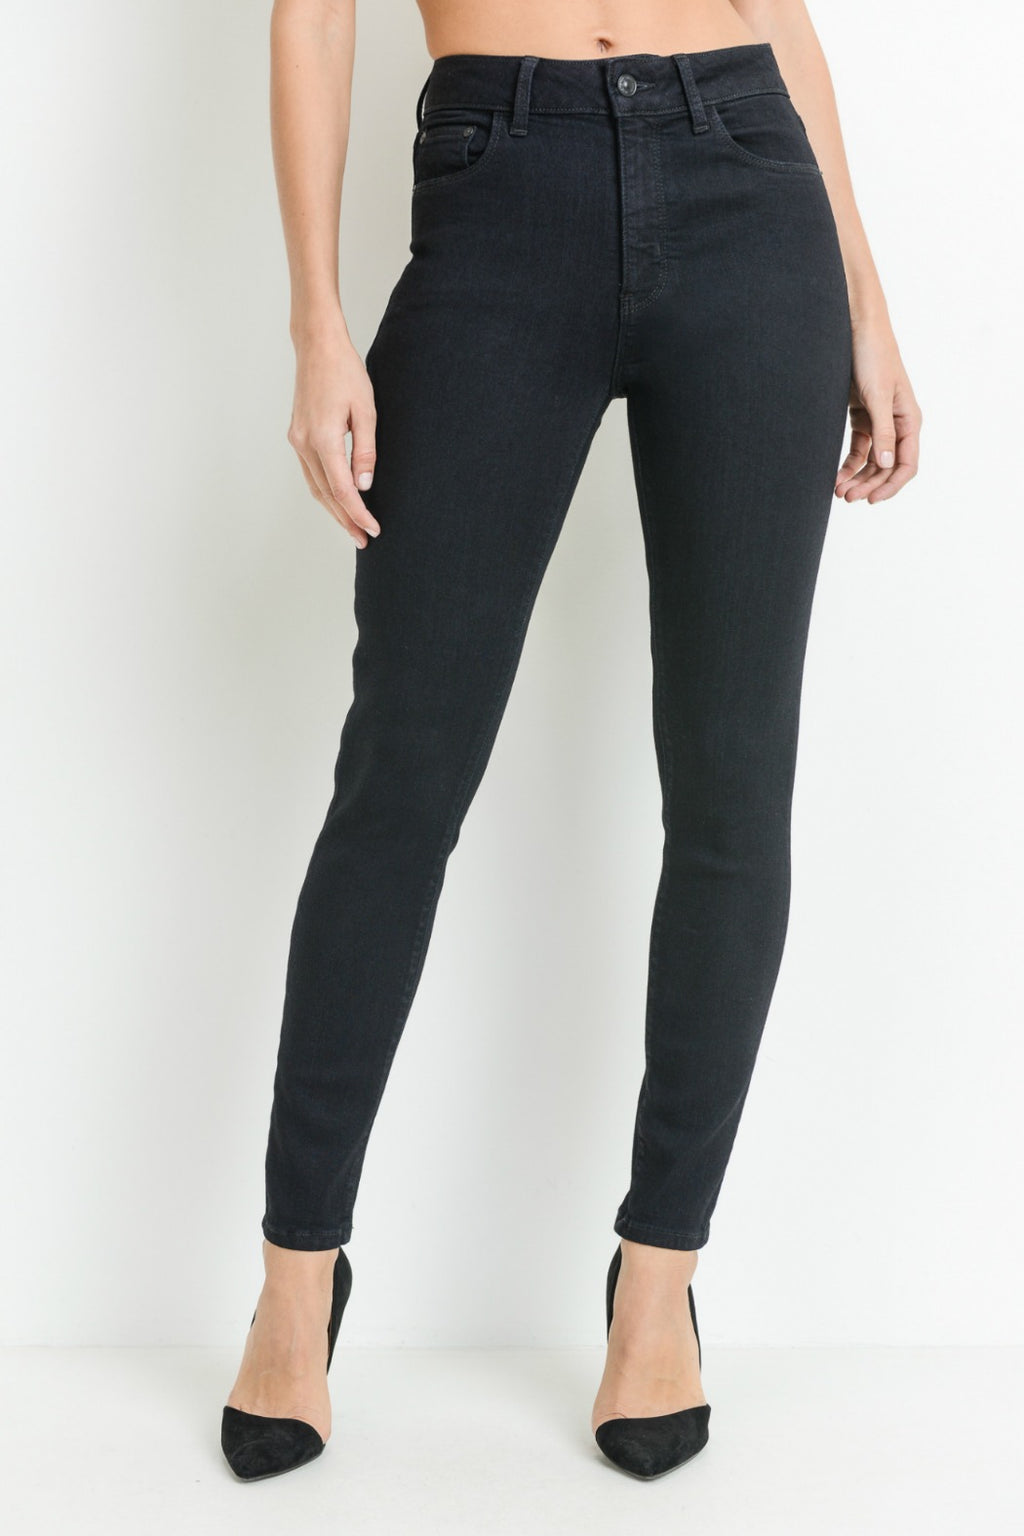 "Just Black Denim 10"" High Rise Basic Skinny"